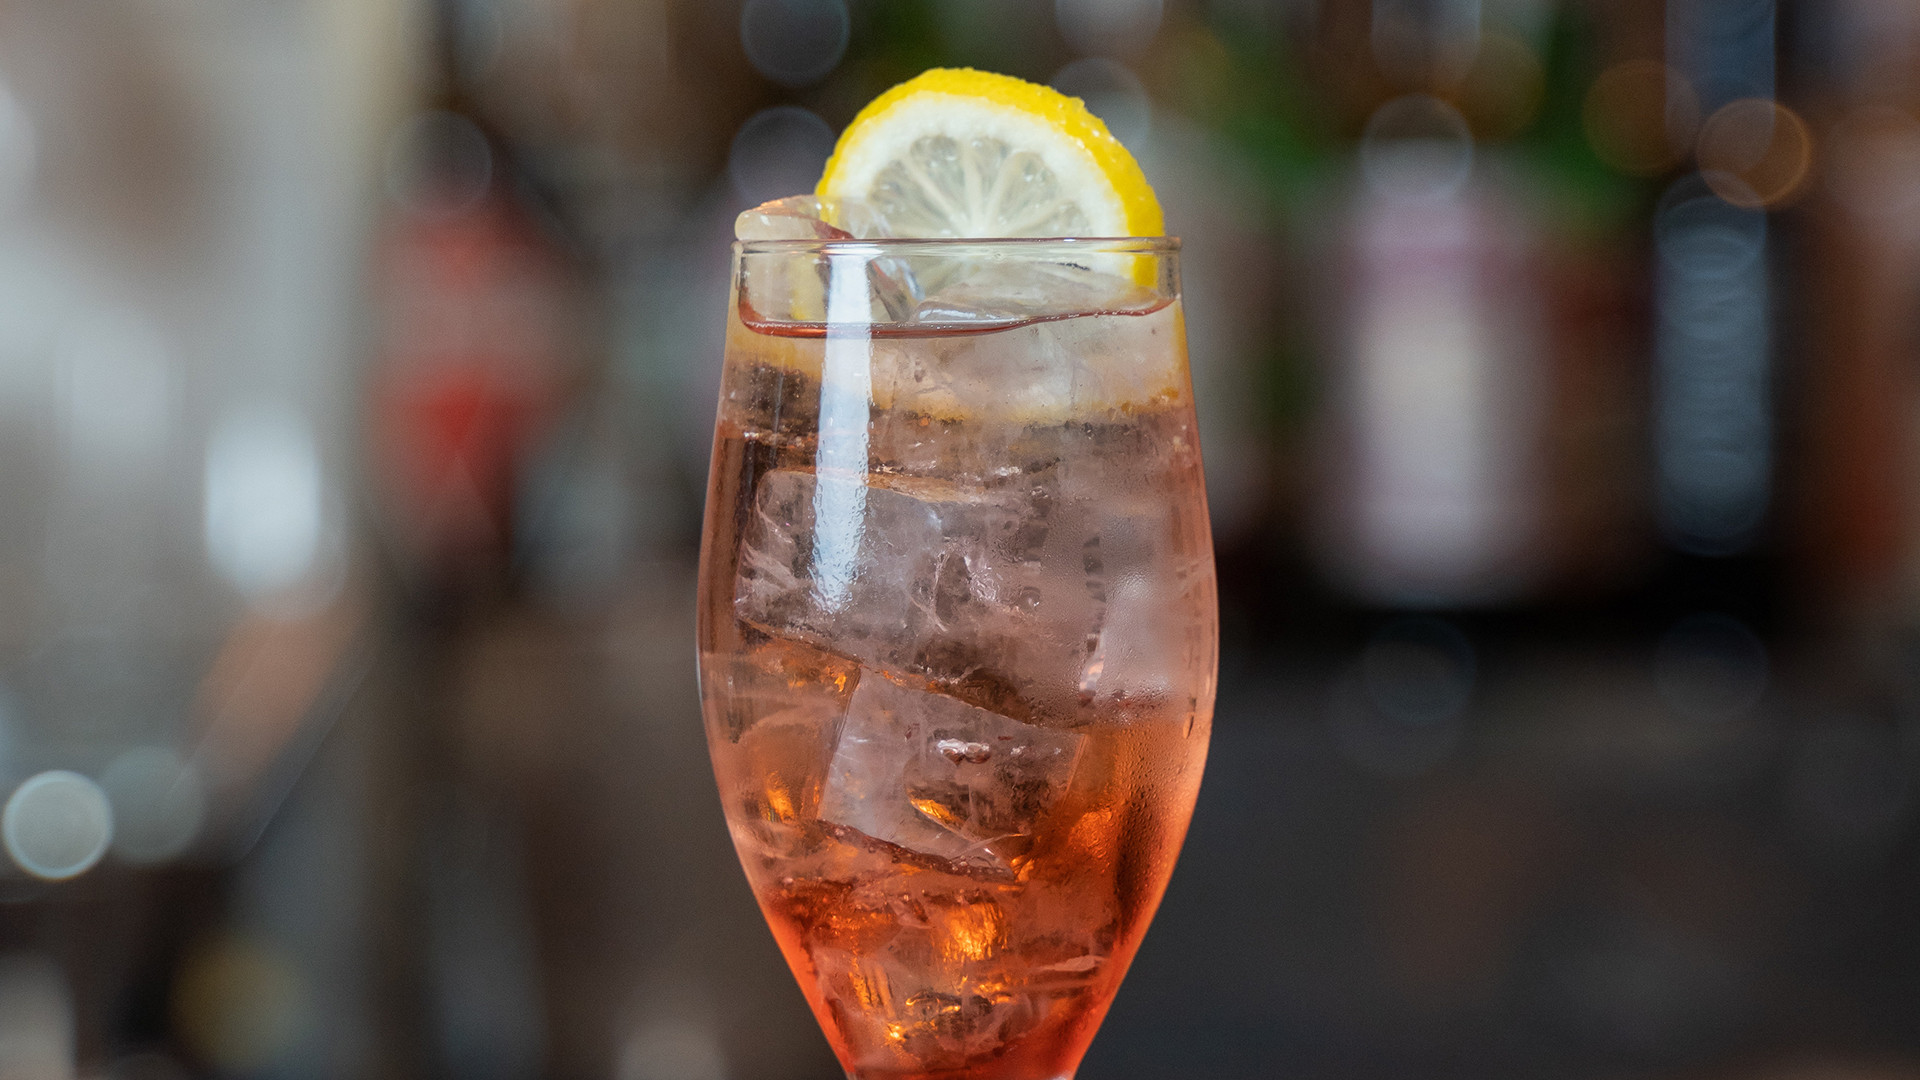 Funkidory 'Peach Please' cocktail